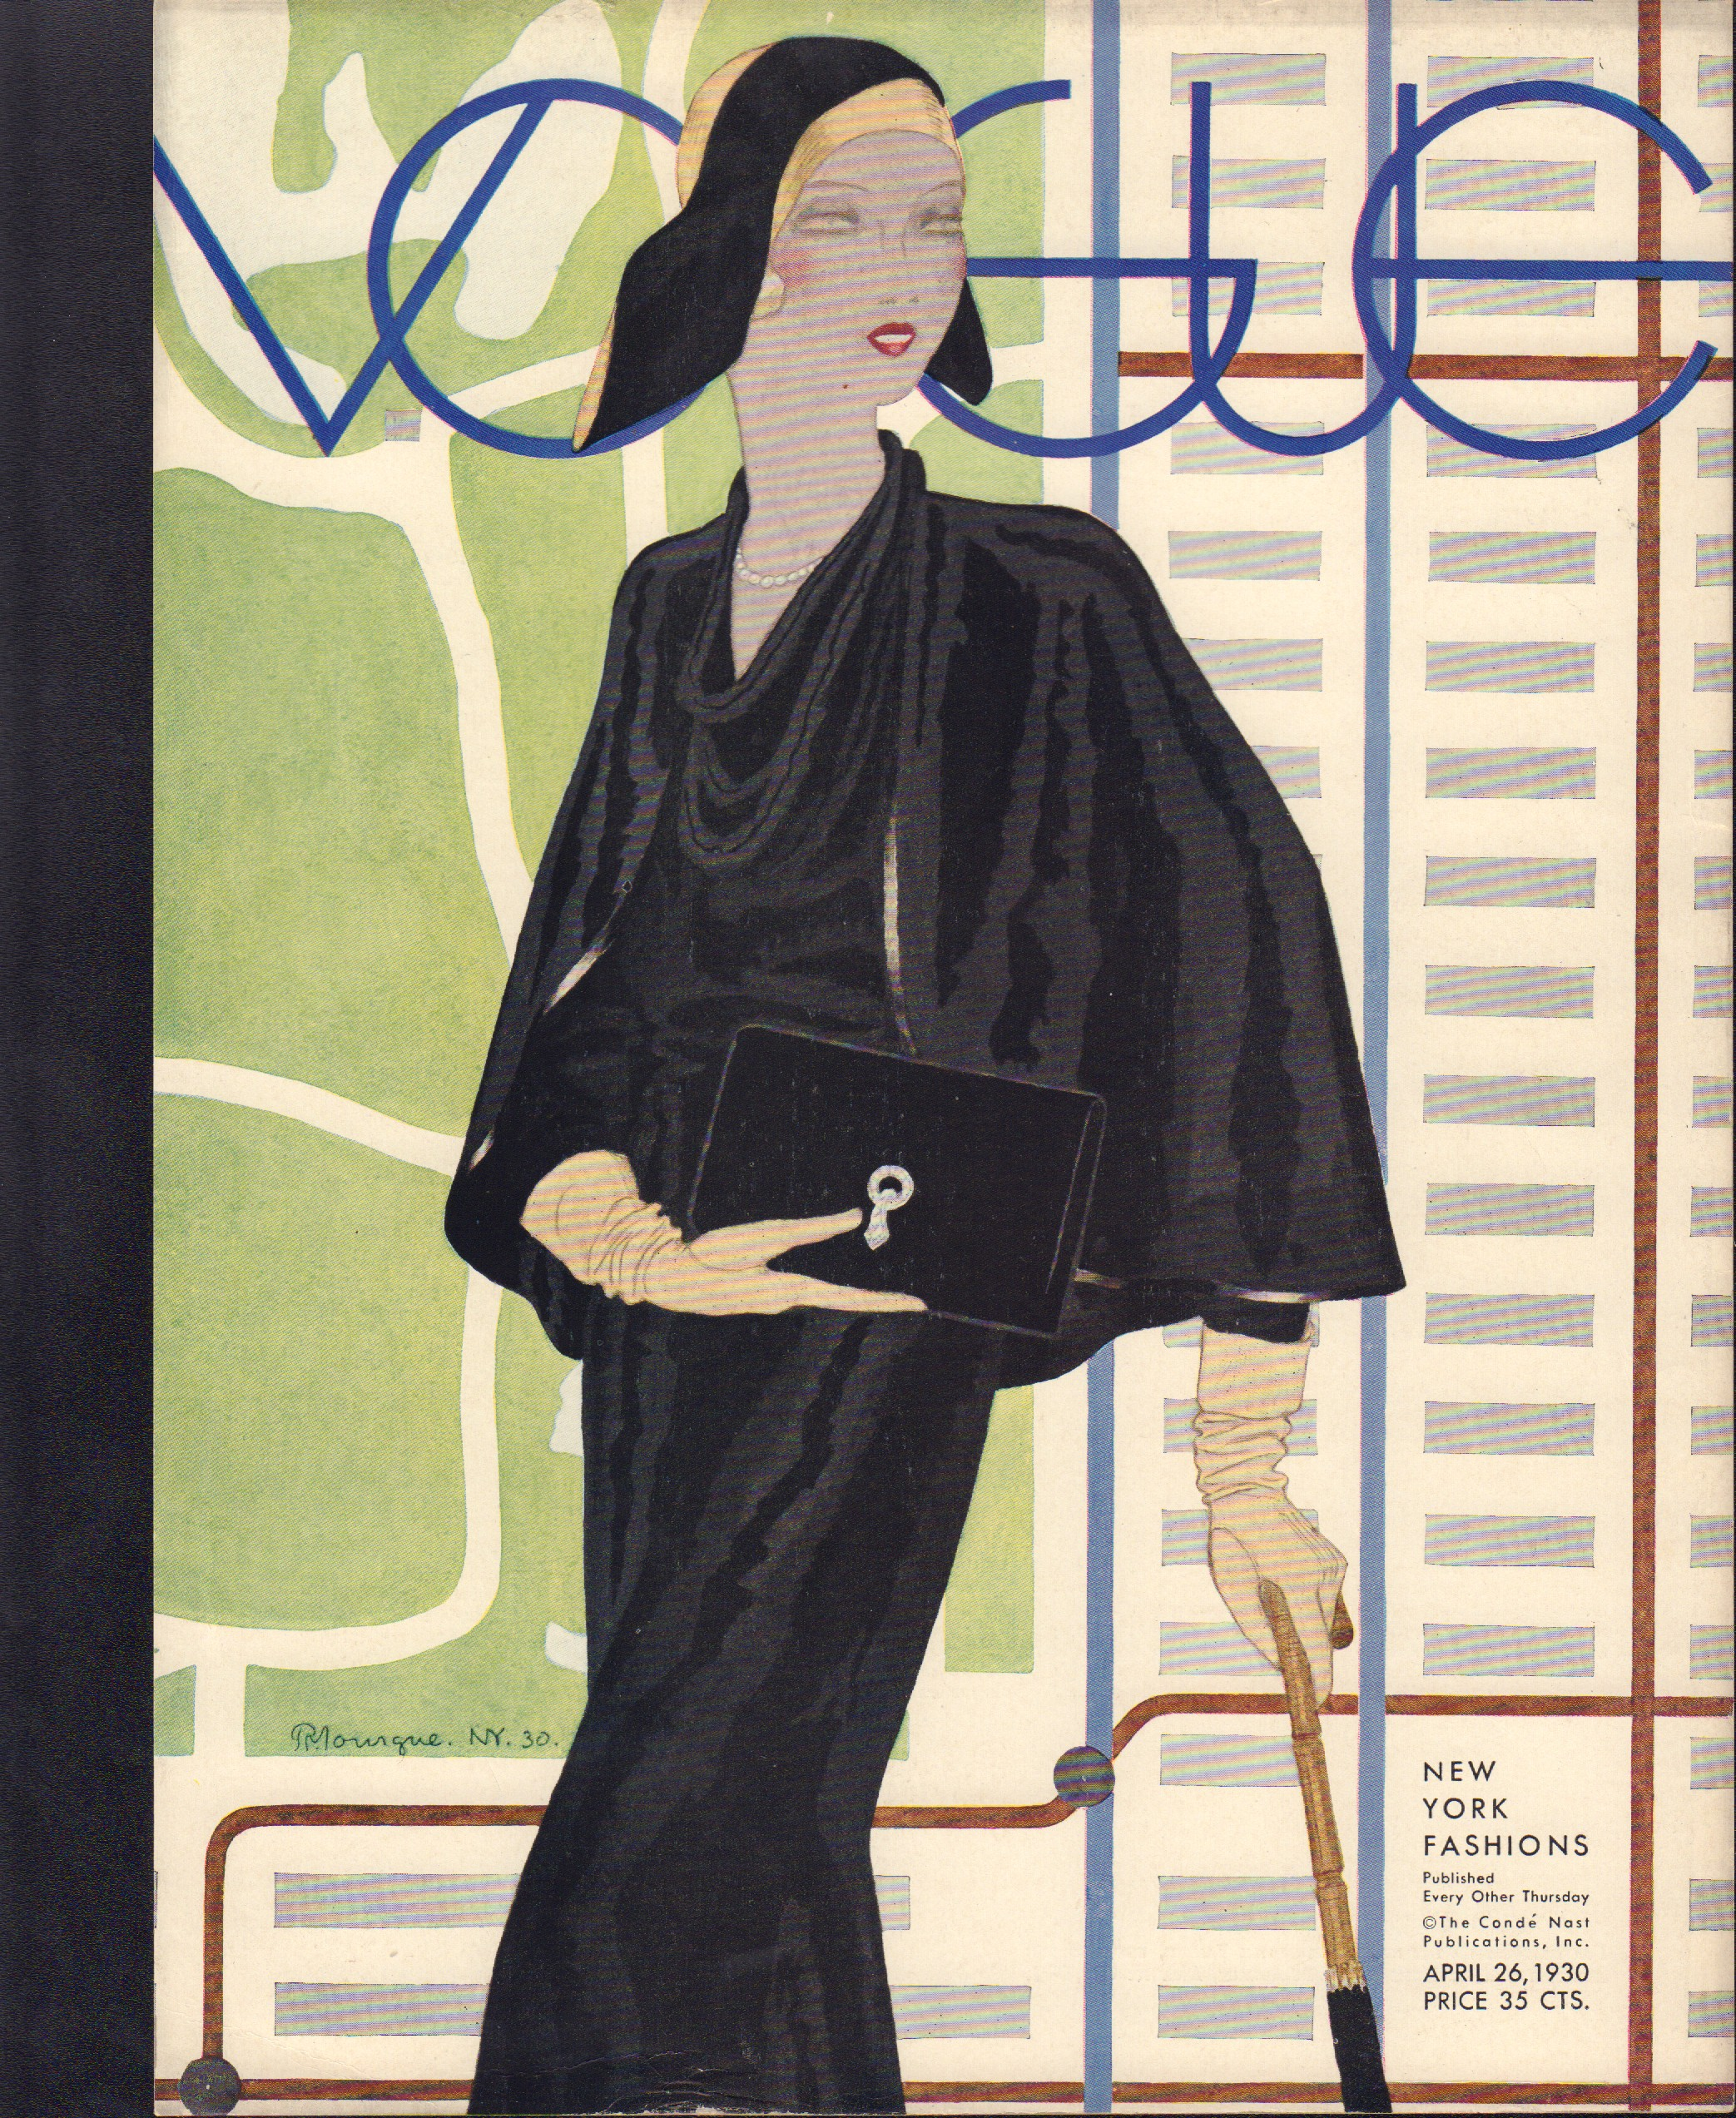 Image for Vogue April 26, 1930 Cover